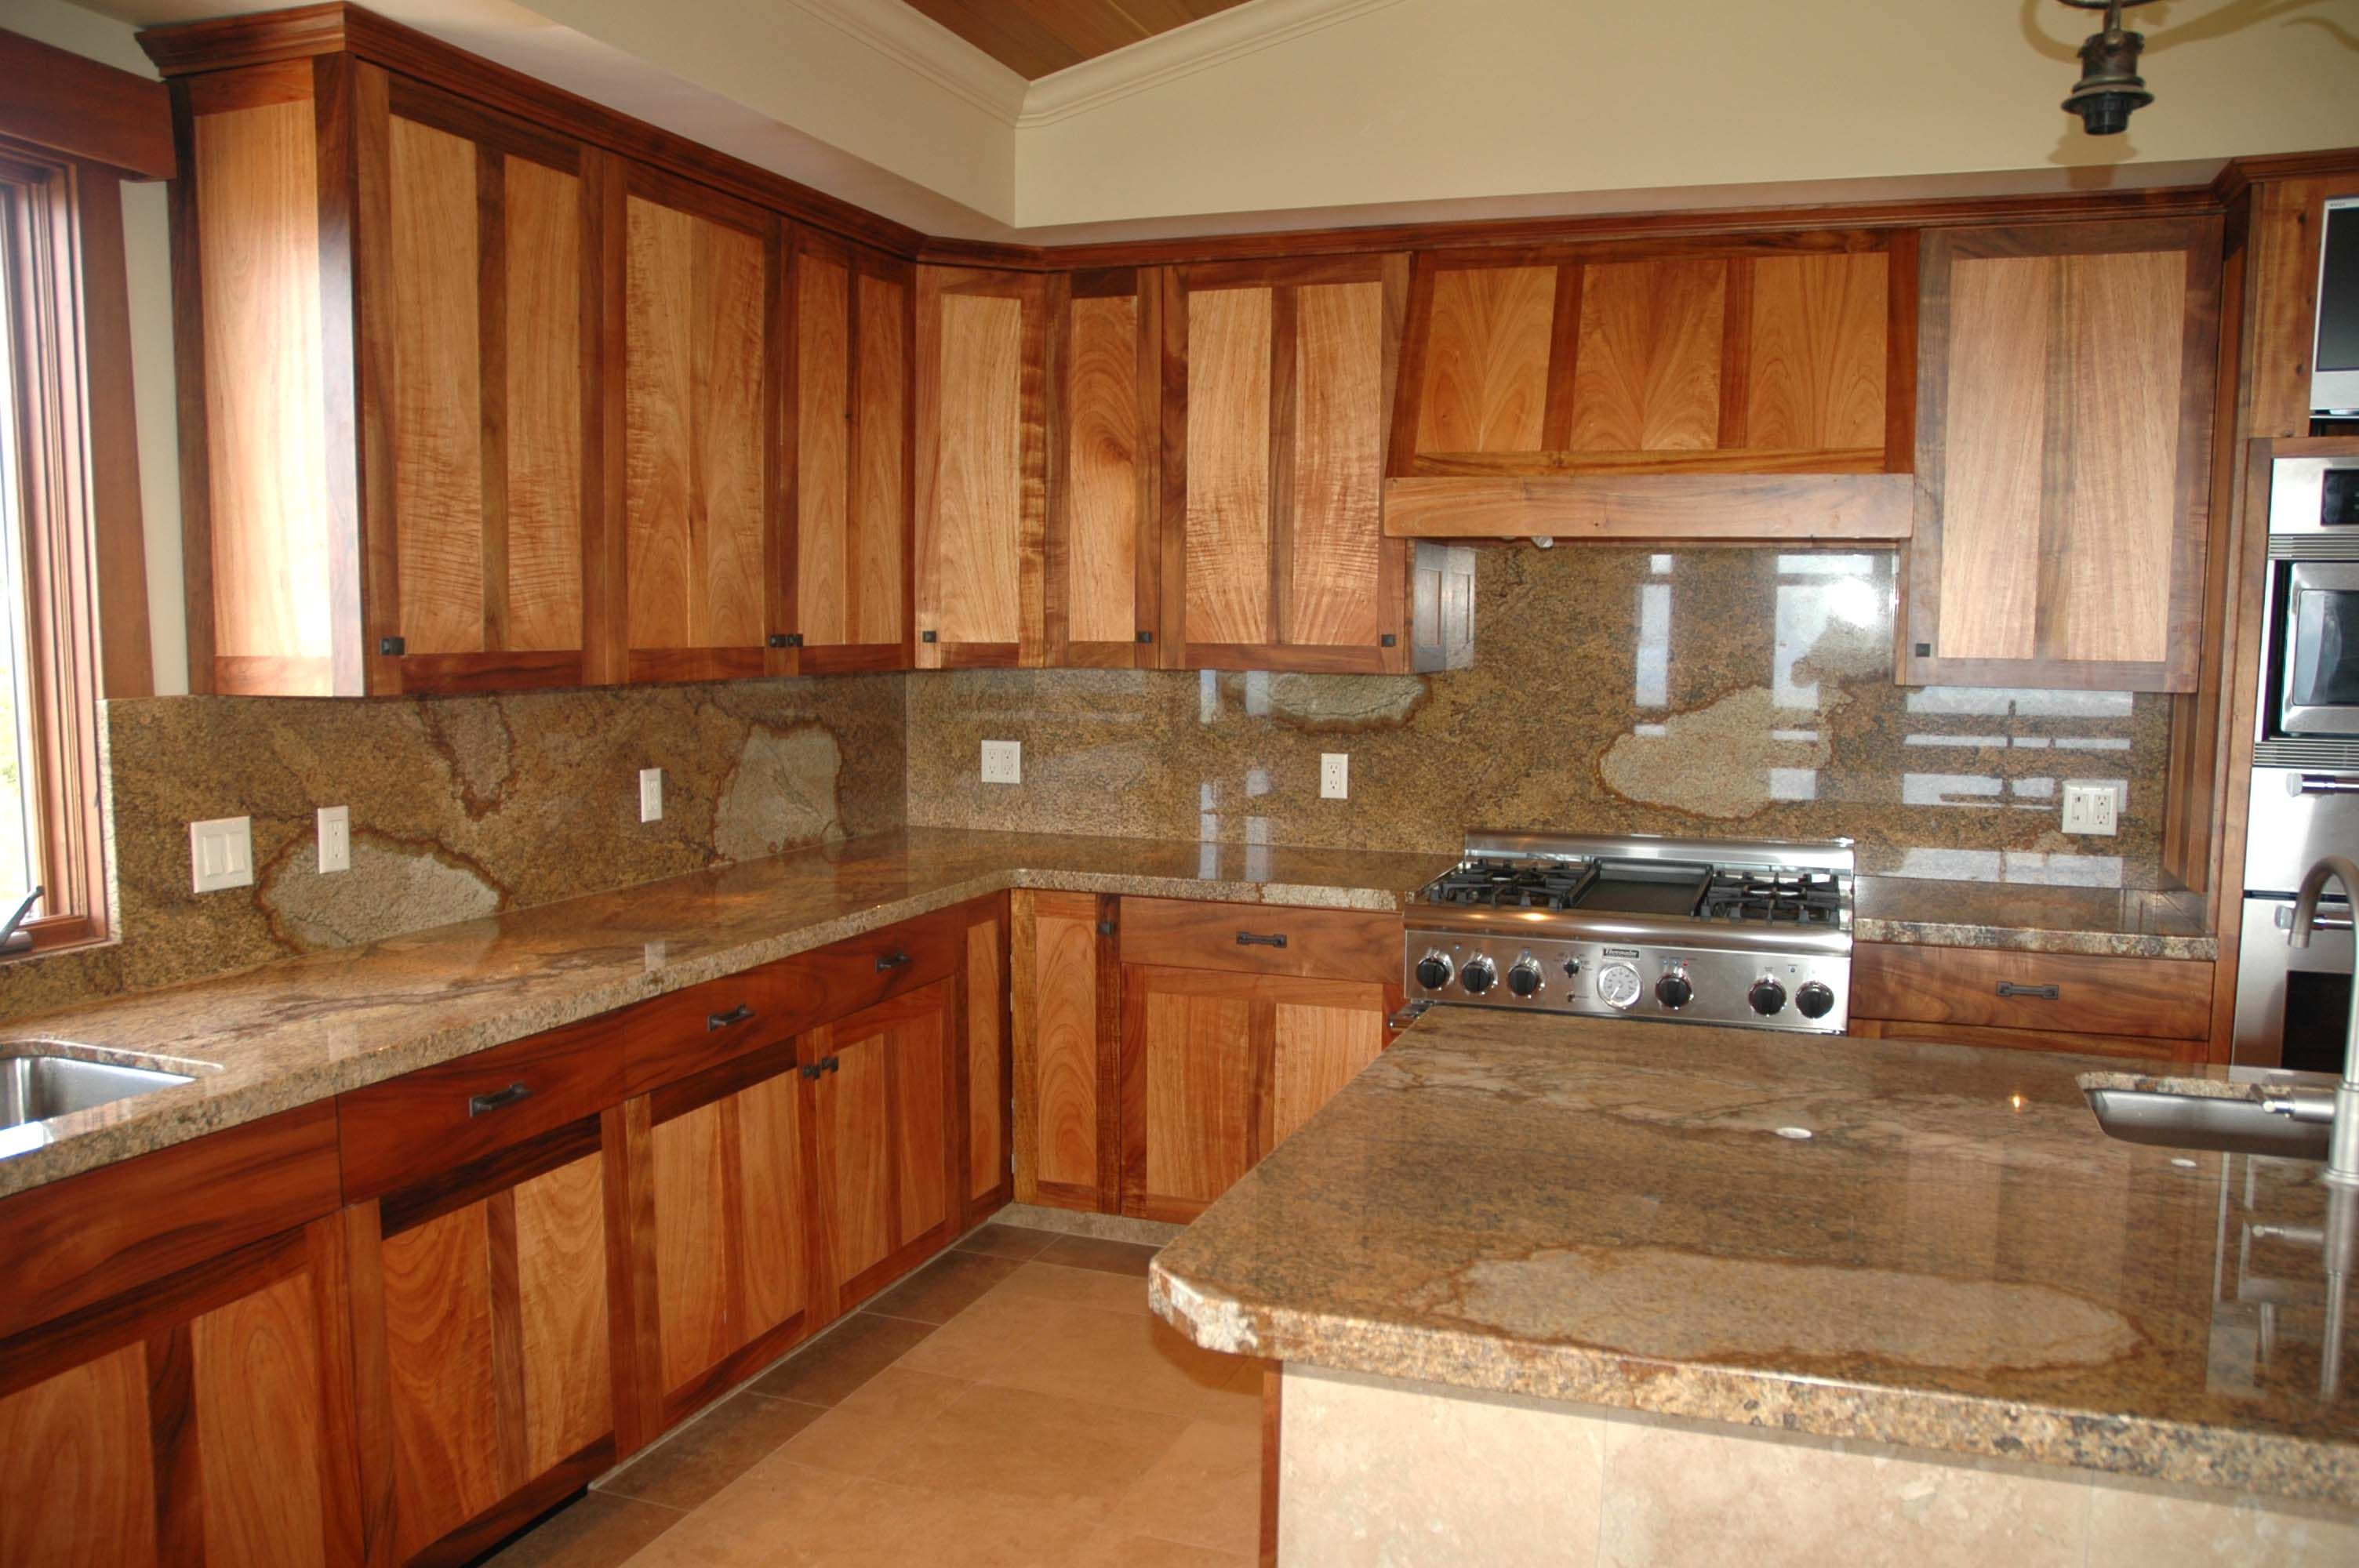 Custom cabinets custom koa kitchen in kula maui hawaii for Custom cabinetry